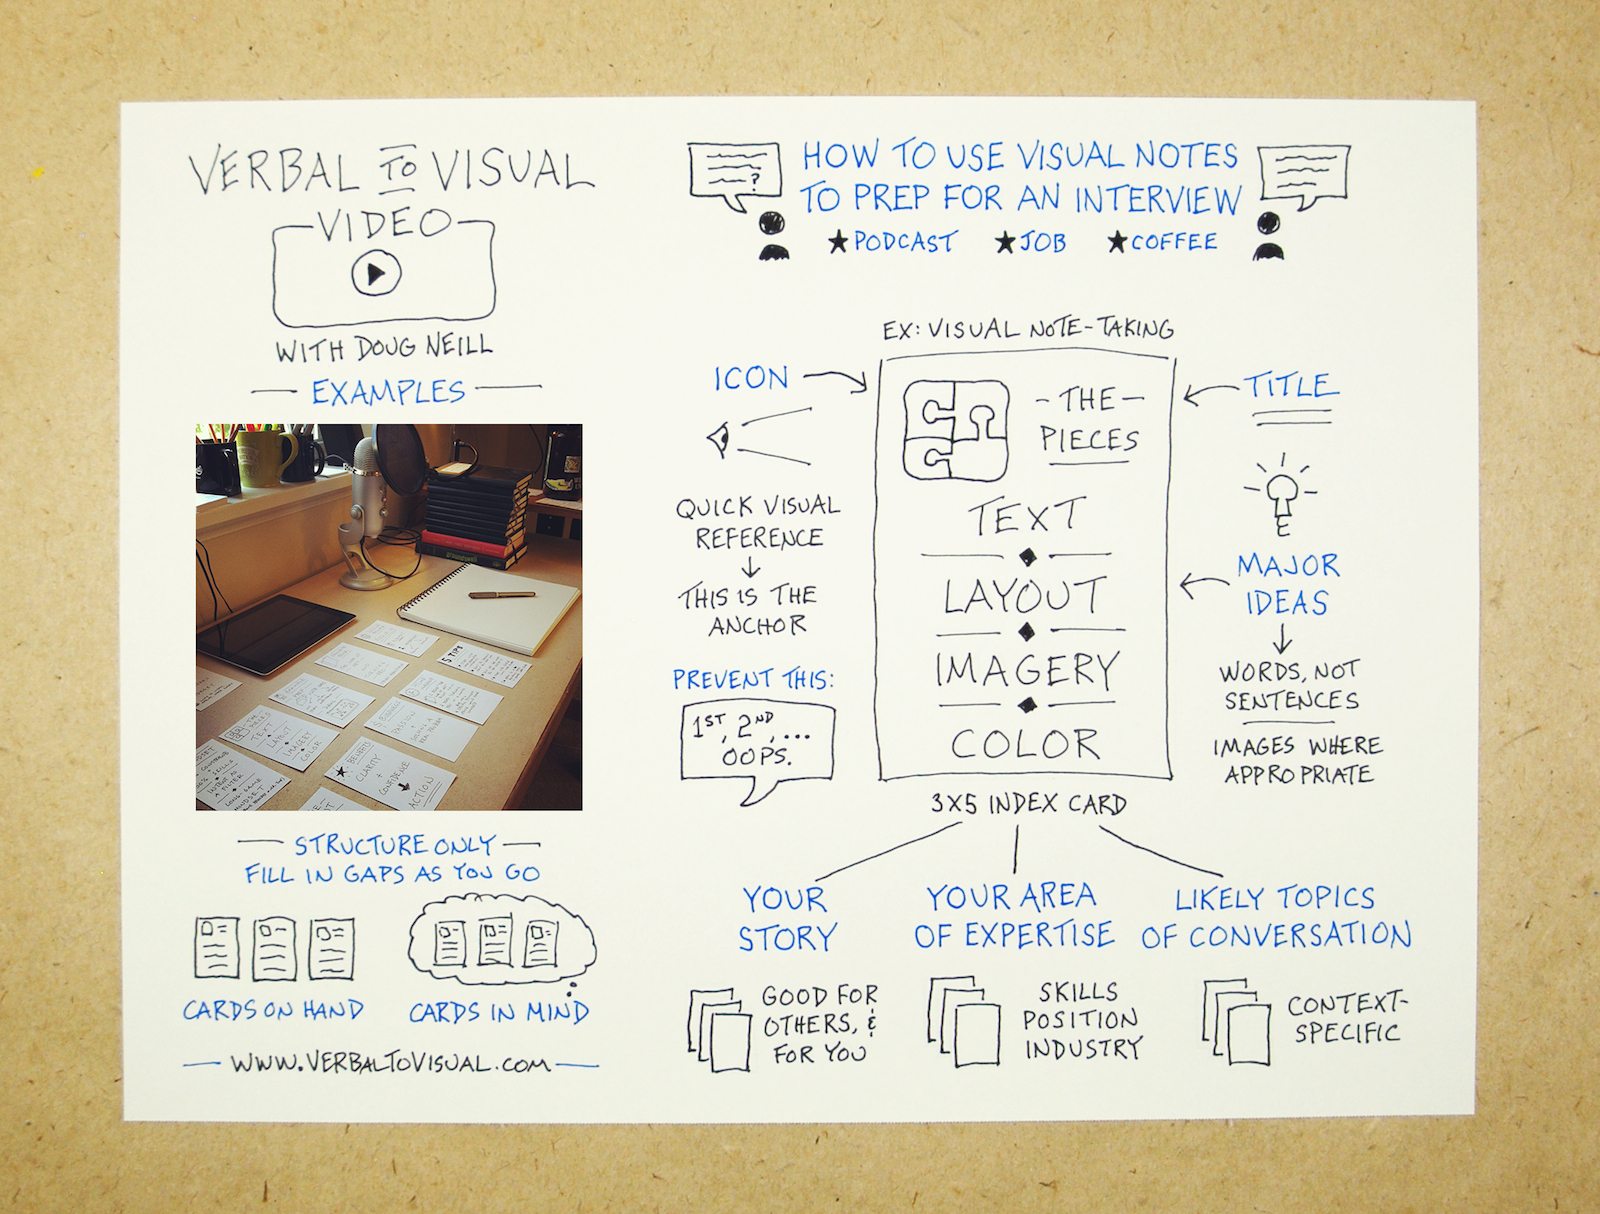 how to use visual notes to prepare for an interview verbal to visual